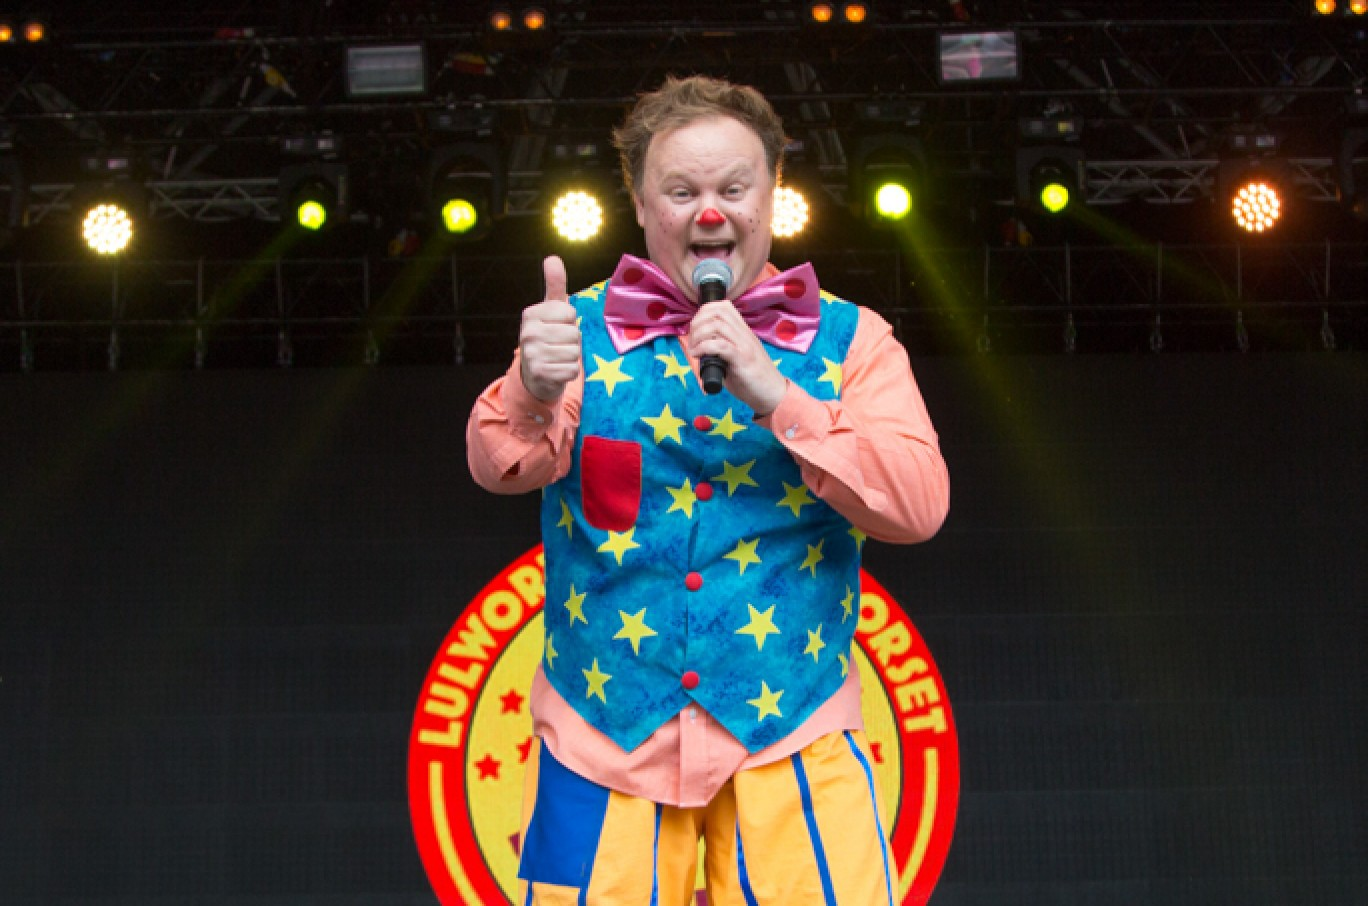 6_25-camp-bestival-2017-mr-tumble-on-castle-stage-rb-f61a0699-21501584993